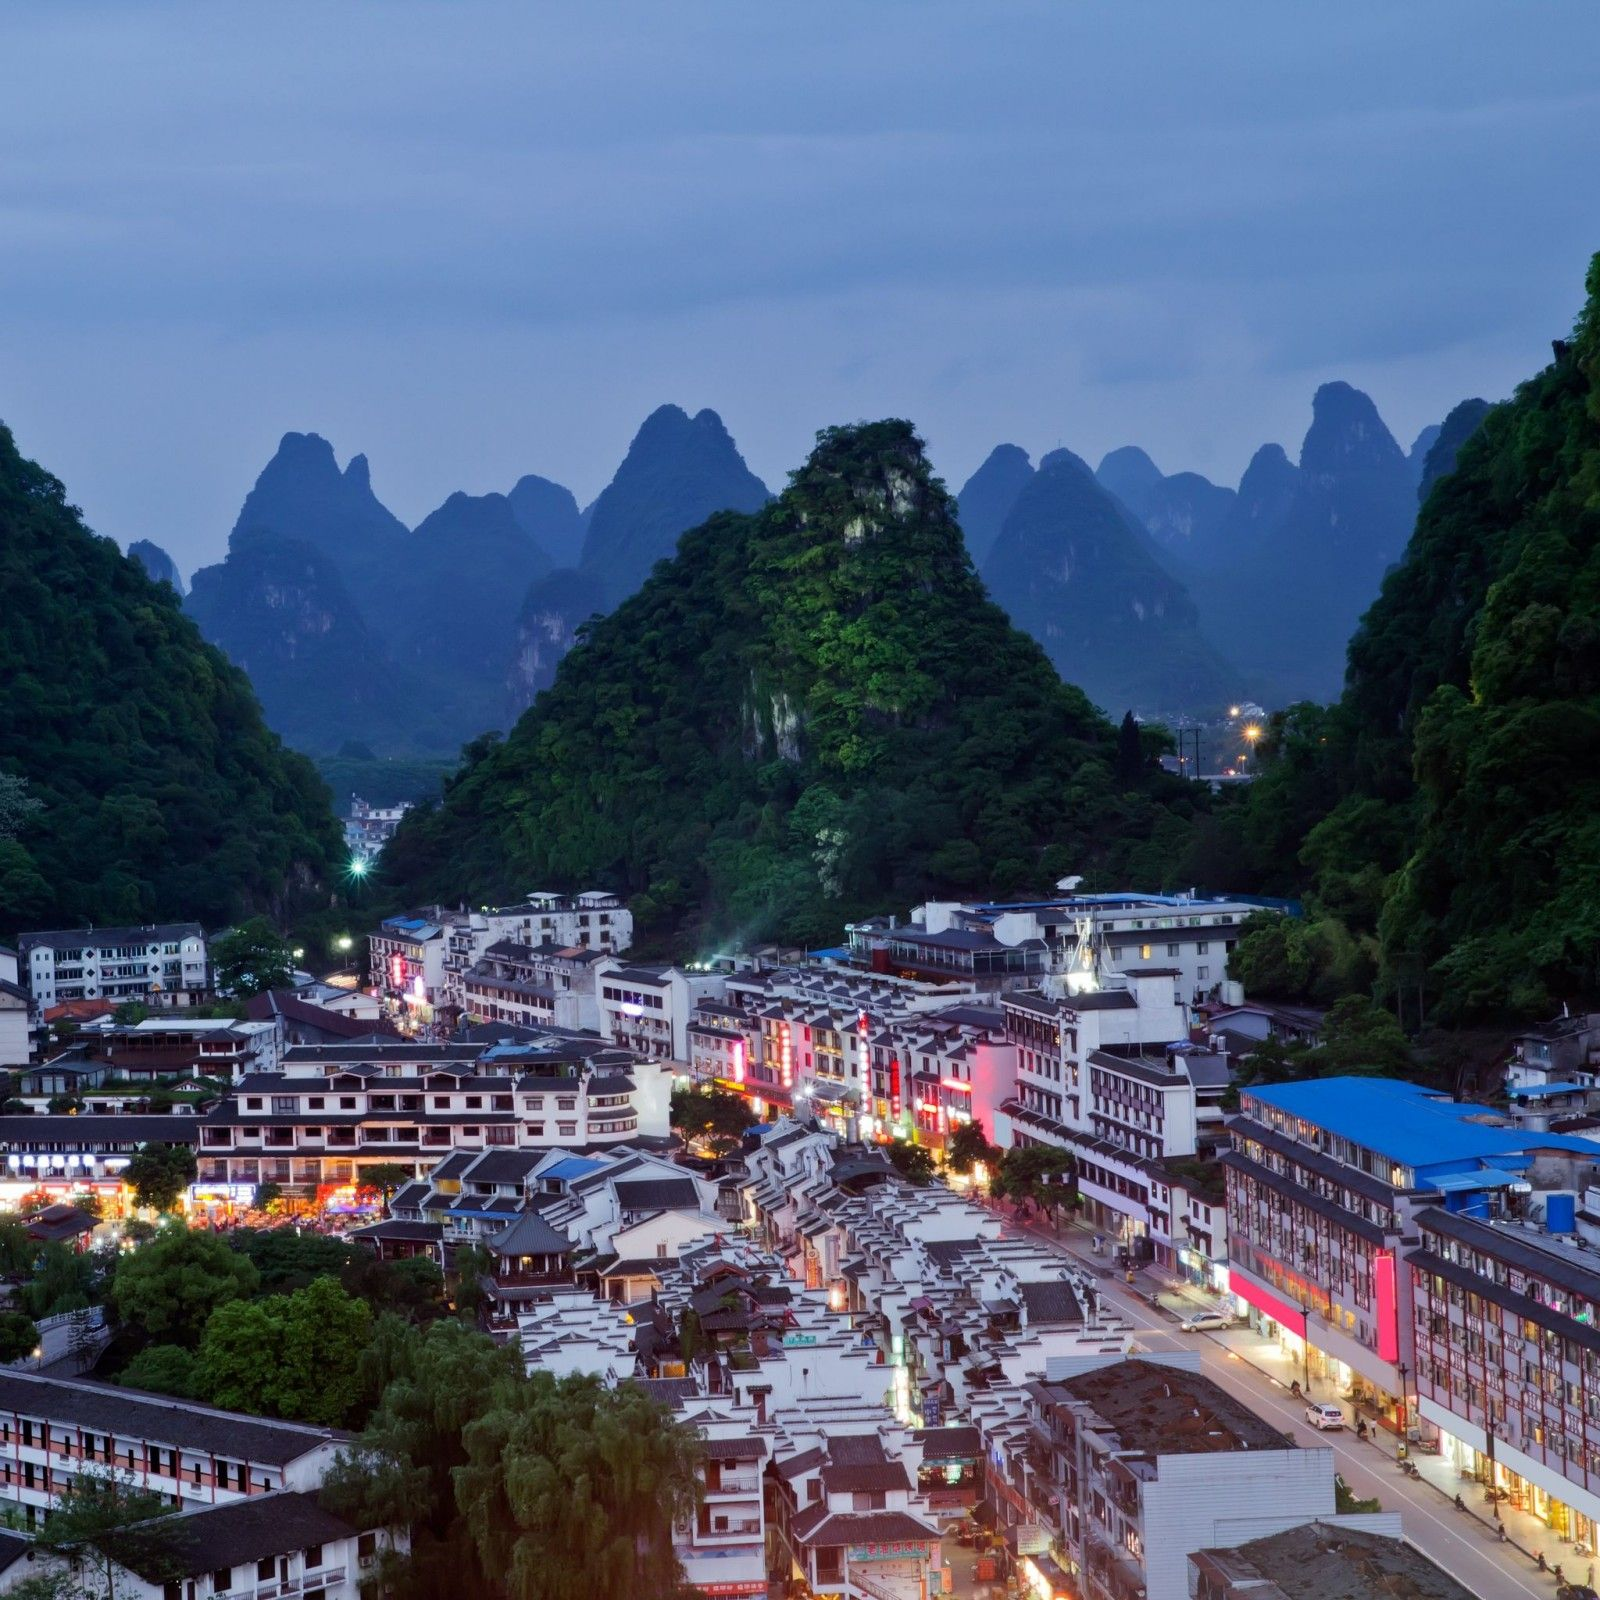 Fall Town Wallpaper Guilin City China Places To Fall In Love With